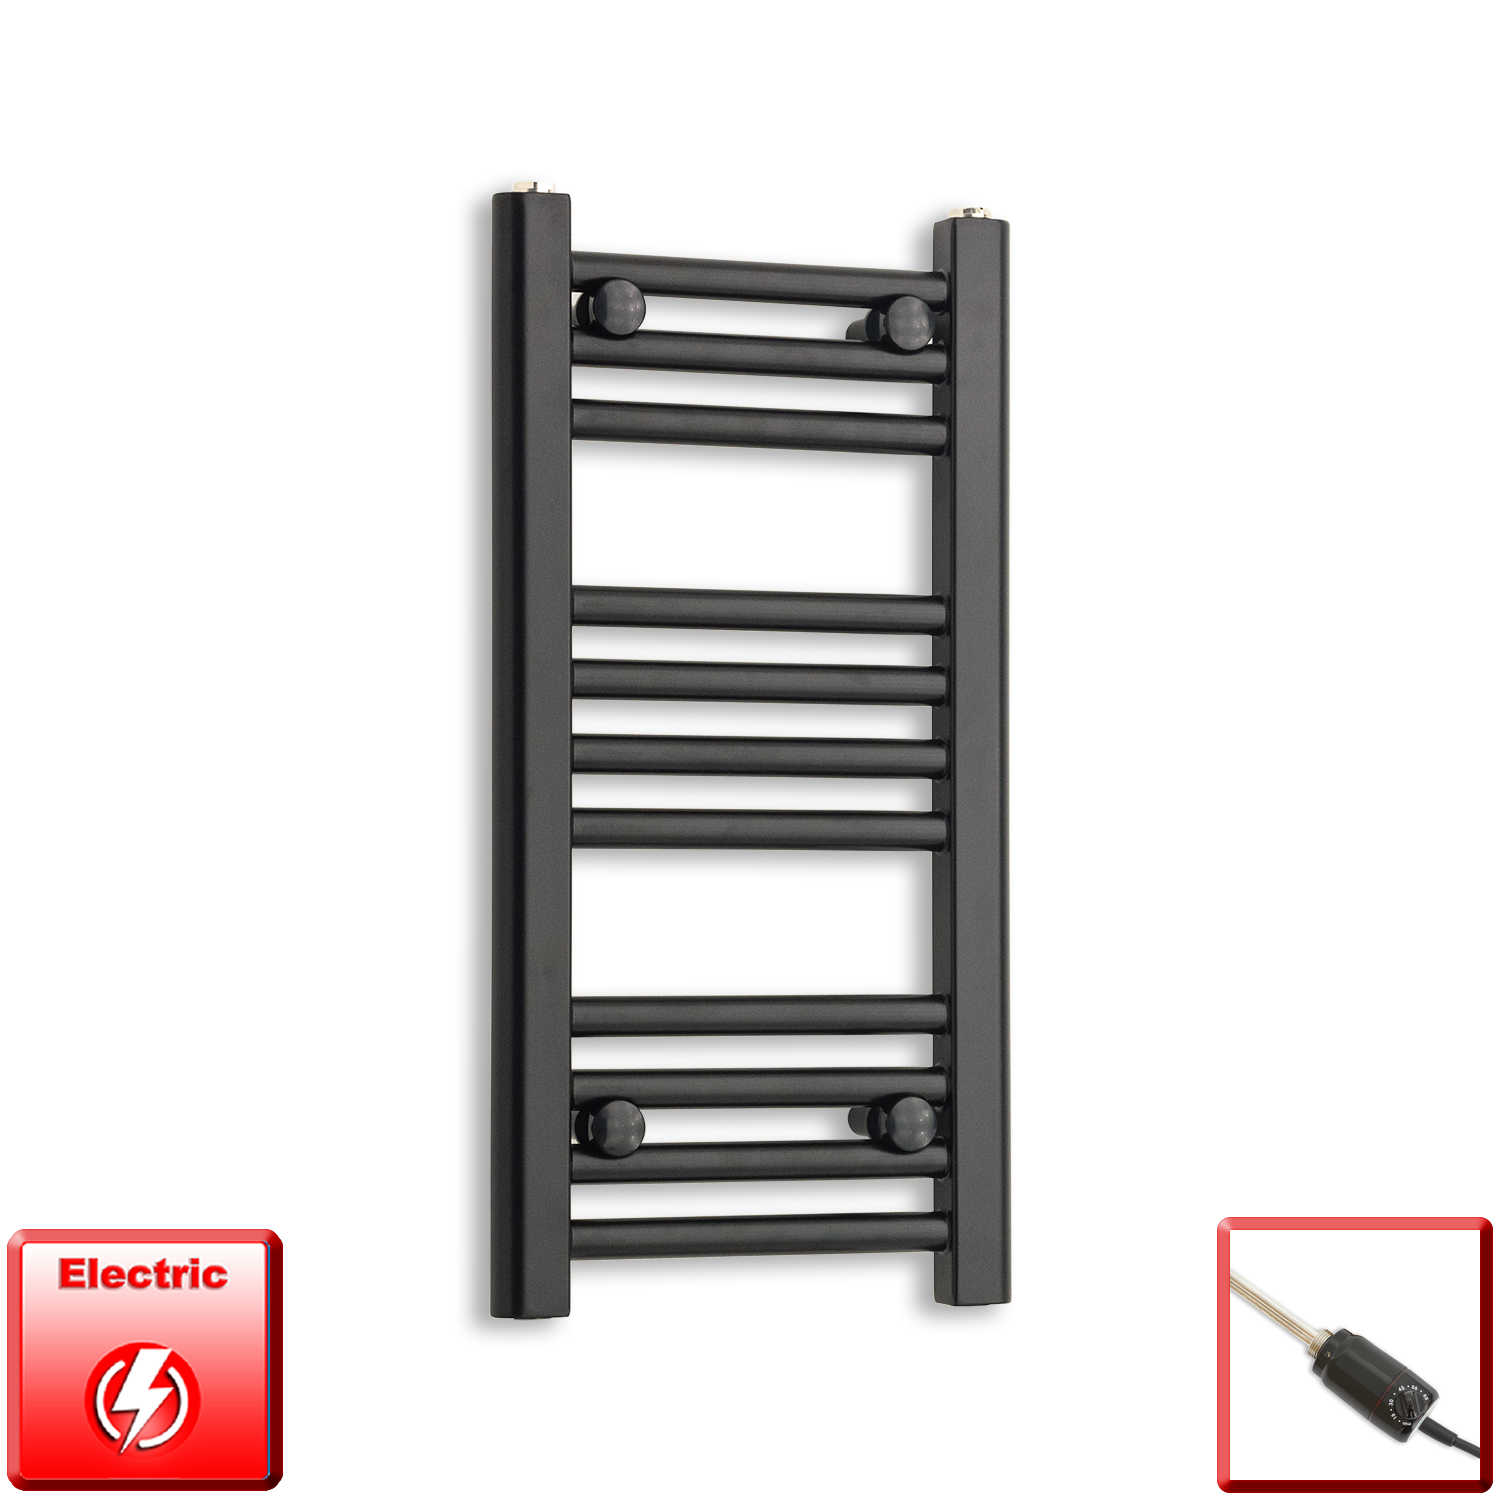 300mm Wide 600mm High Flat Black Pre-Filled Electric Heated Towel Rail Radiator HTR,GT Thermostatic